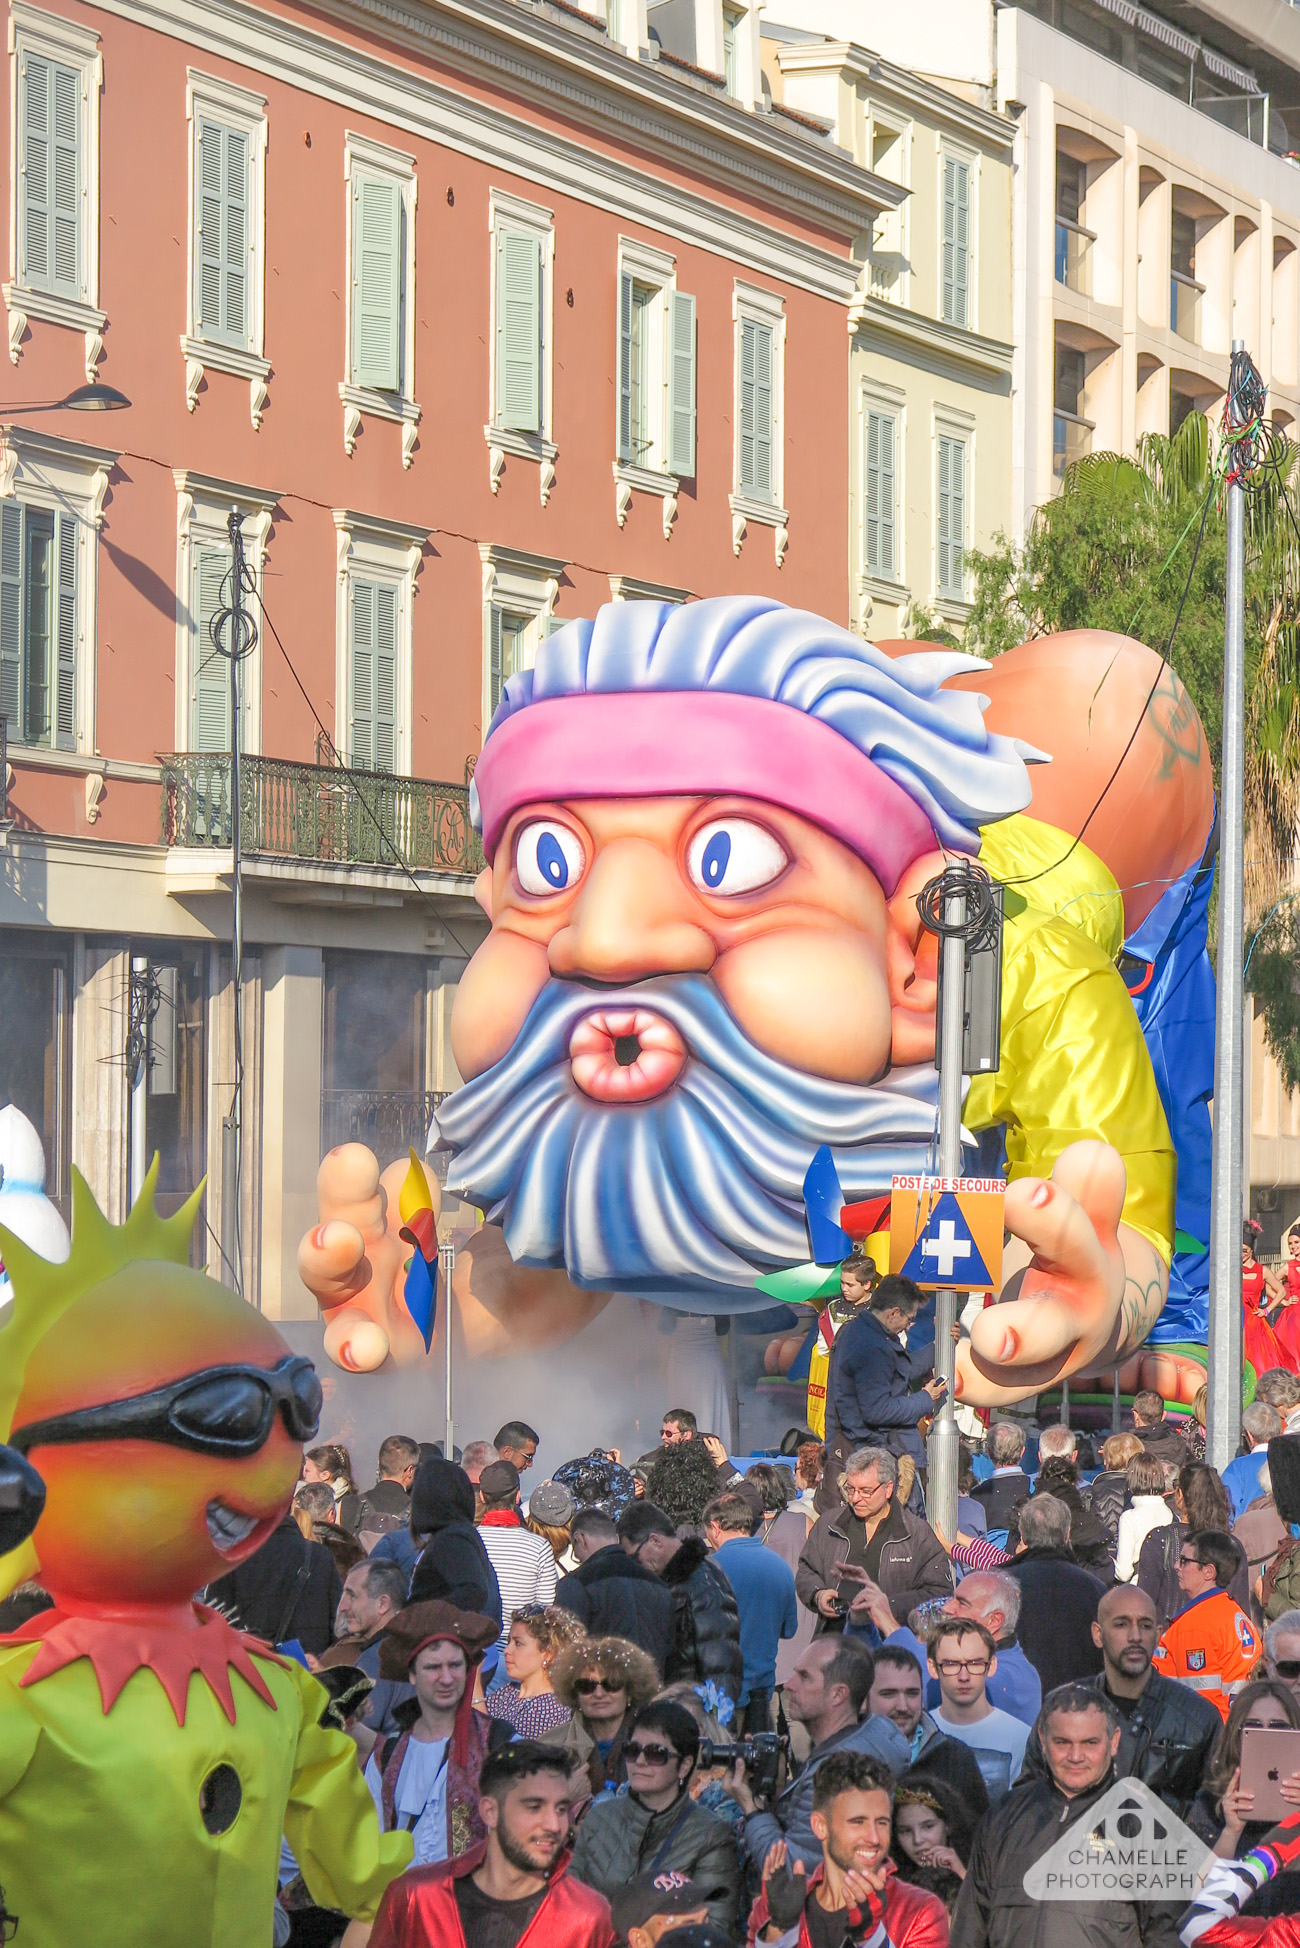 Carnaval de Nice / Nice Carnival - Corso carnavalesque - Day Carnival Parade - France - Chamelle Photography Travel Blog